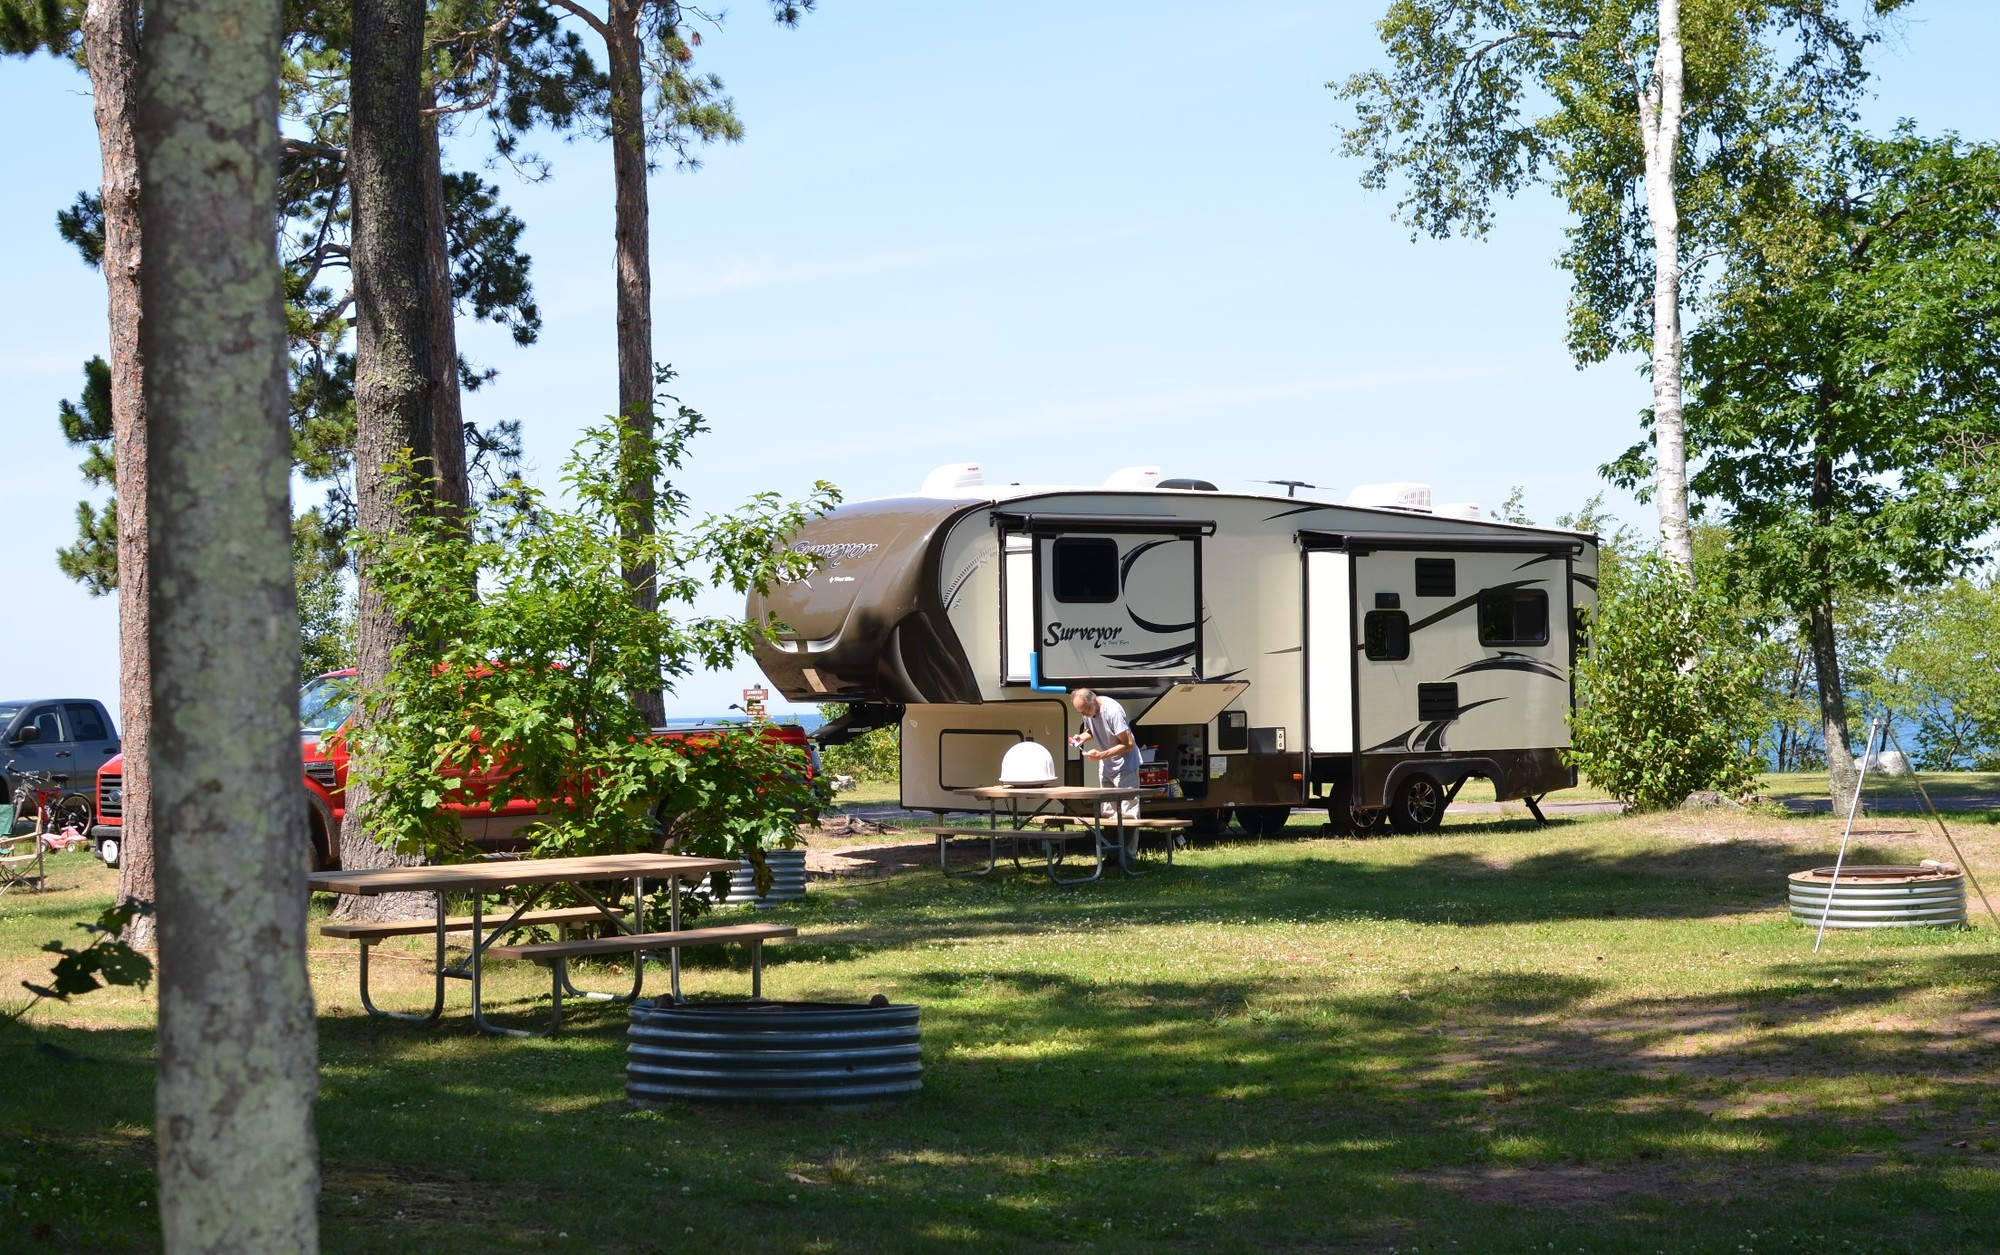 michigan works resume update job seekers michigan works association dnr camping and recreation about your state